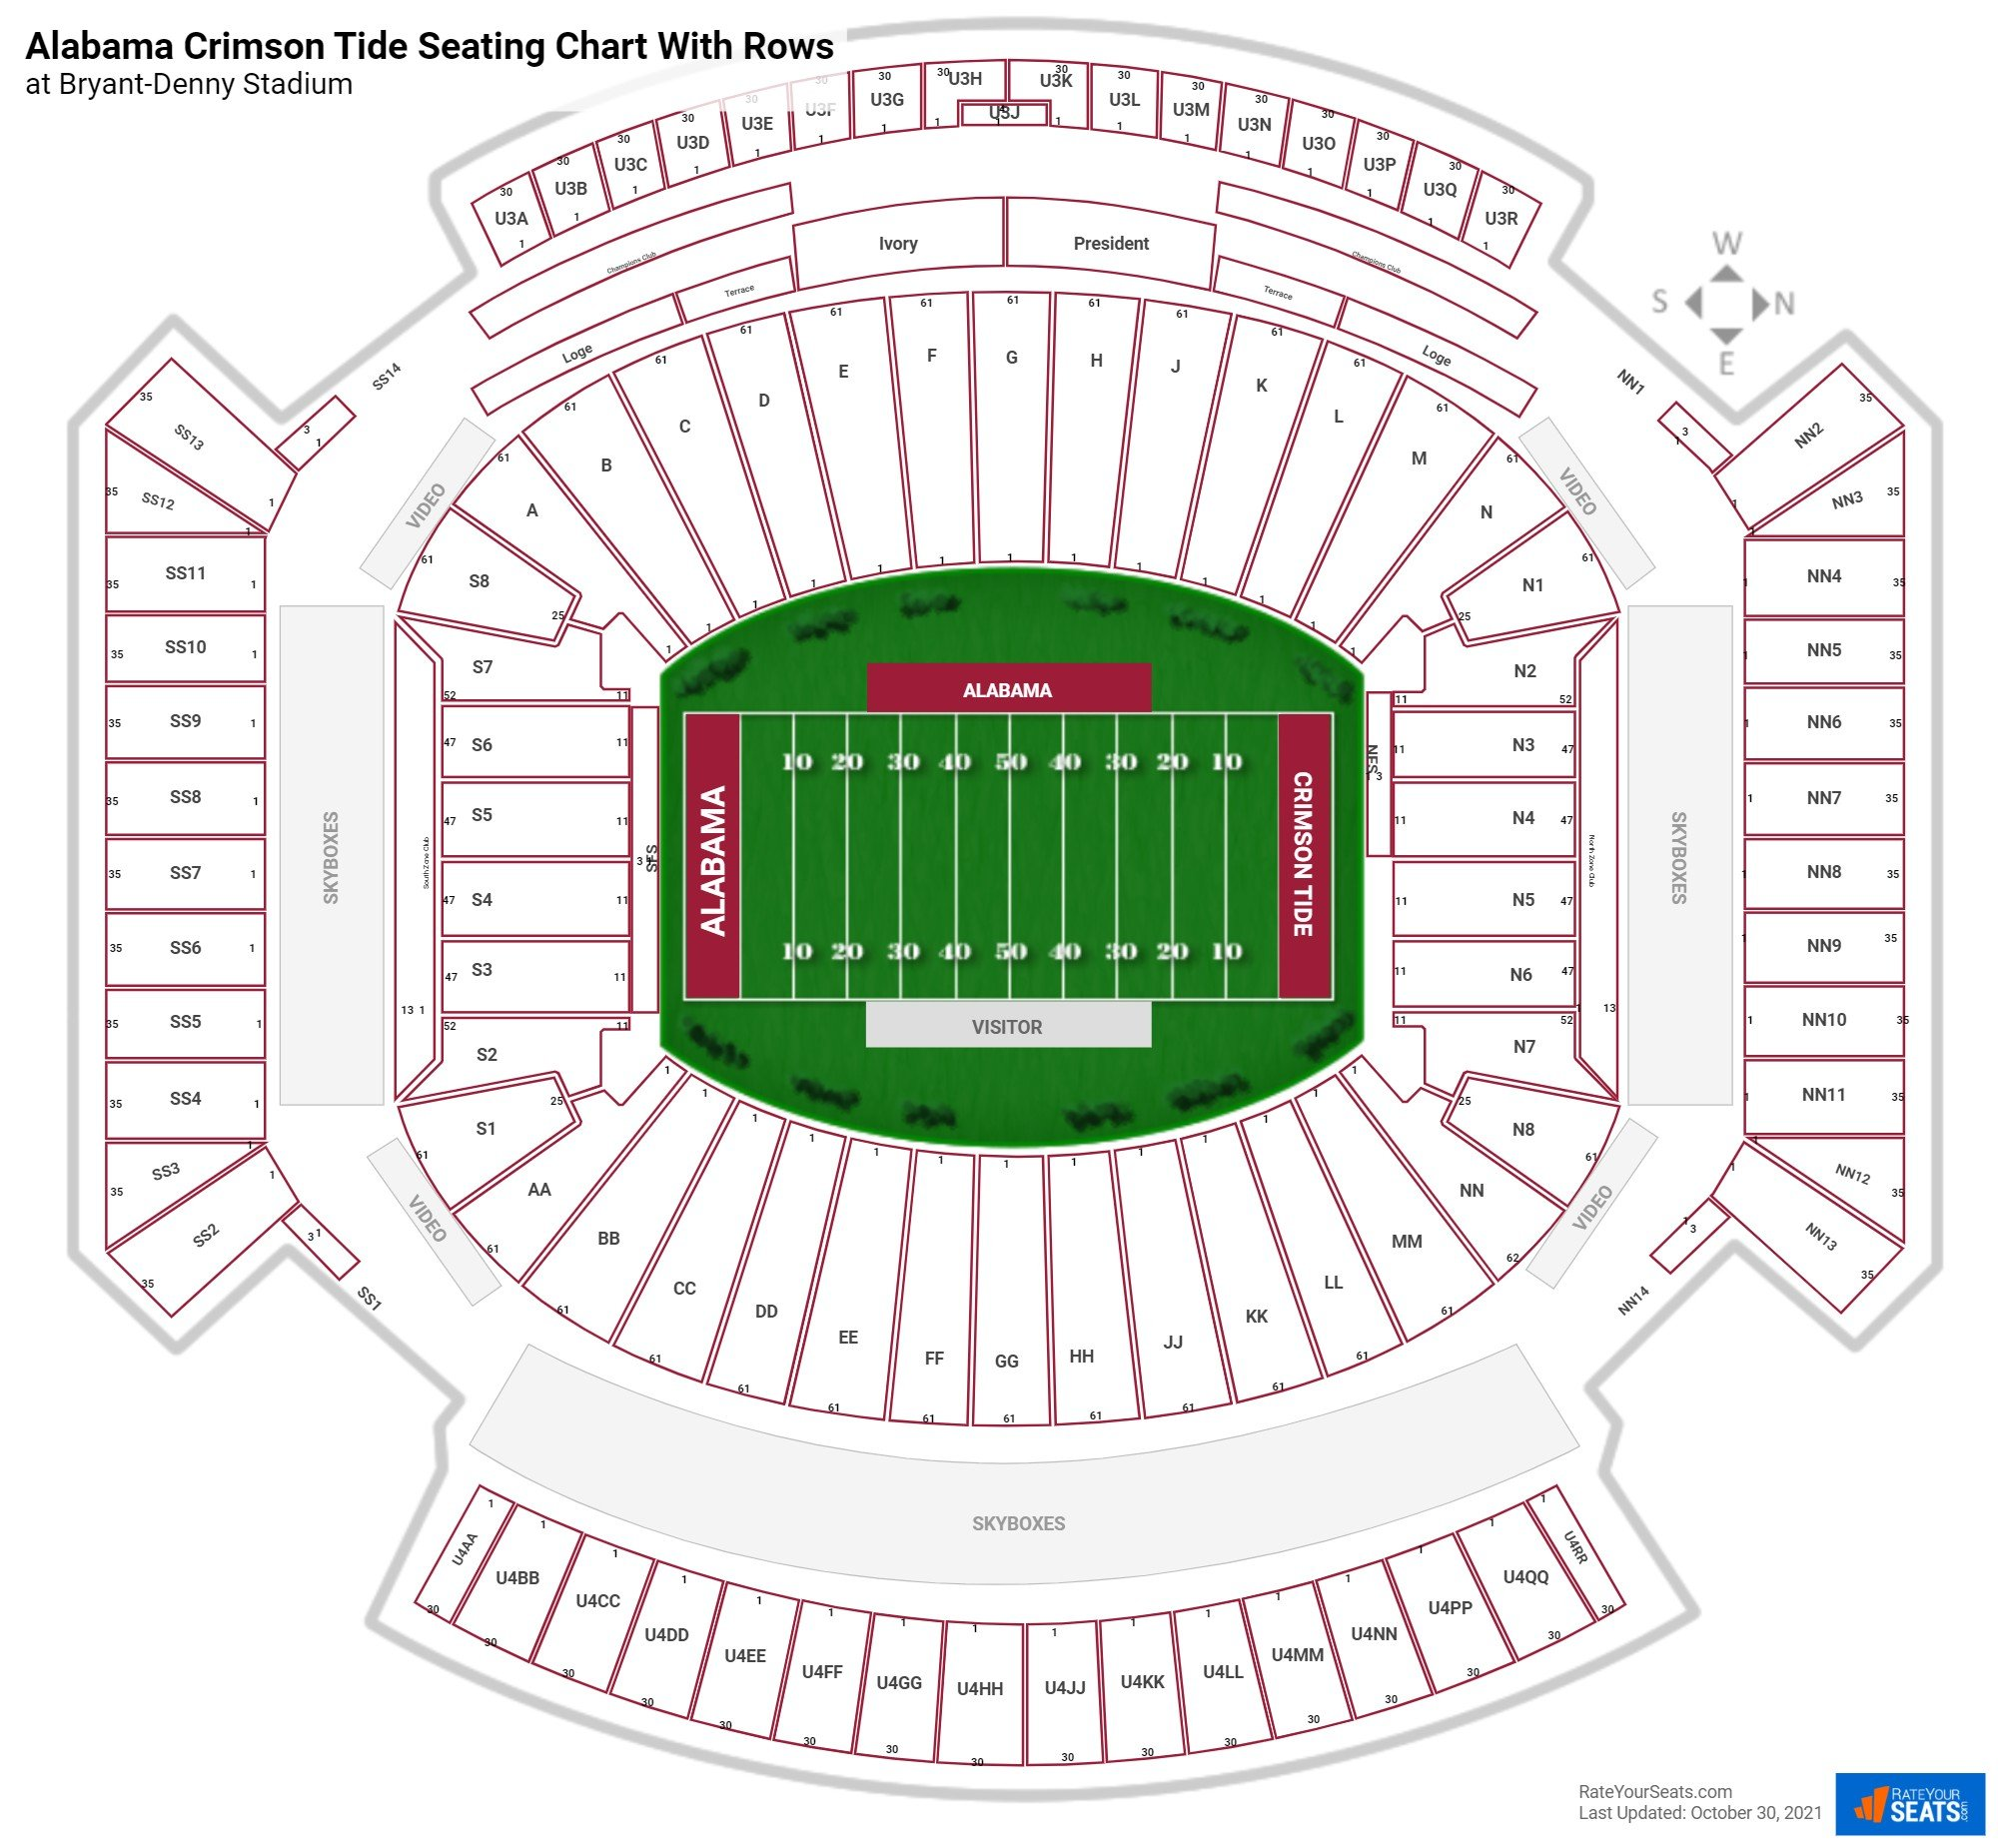 Bryant-Denny Stadium seating chart with rows